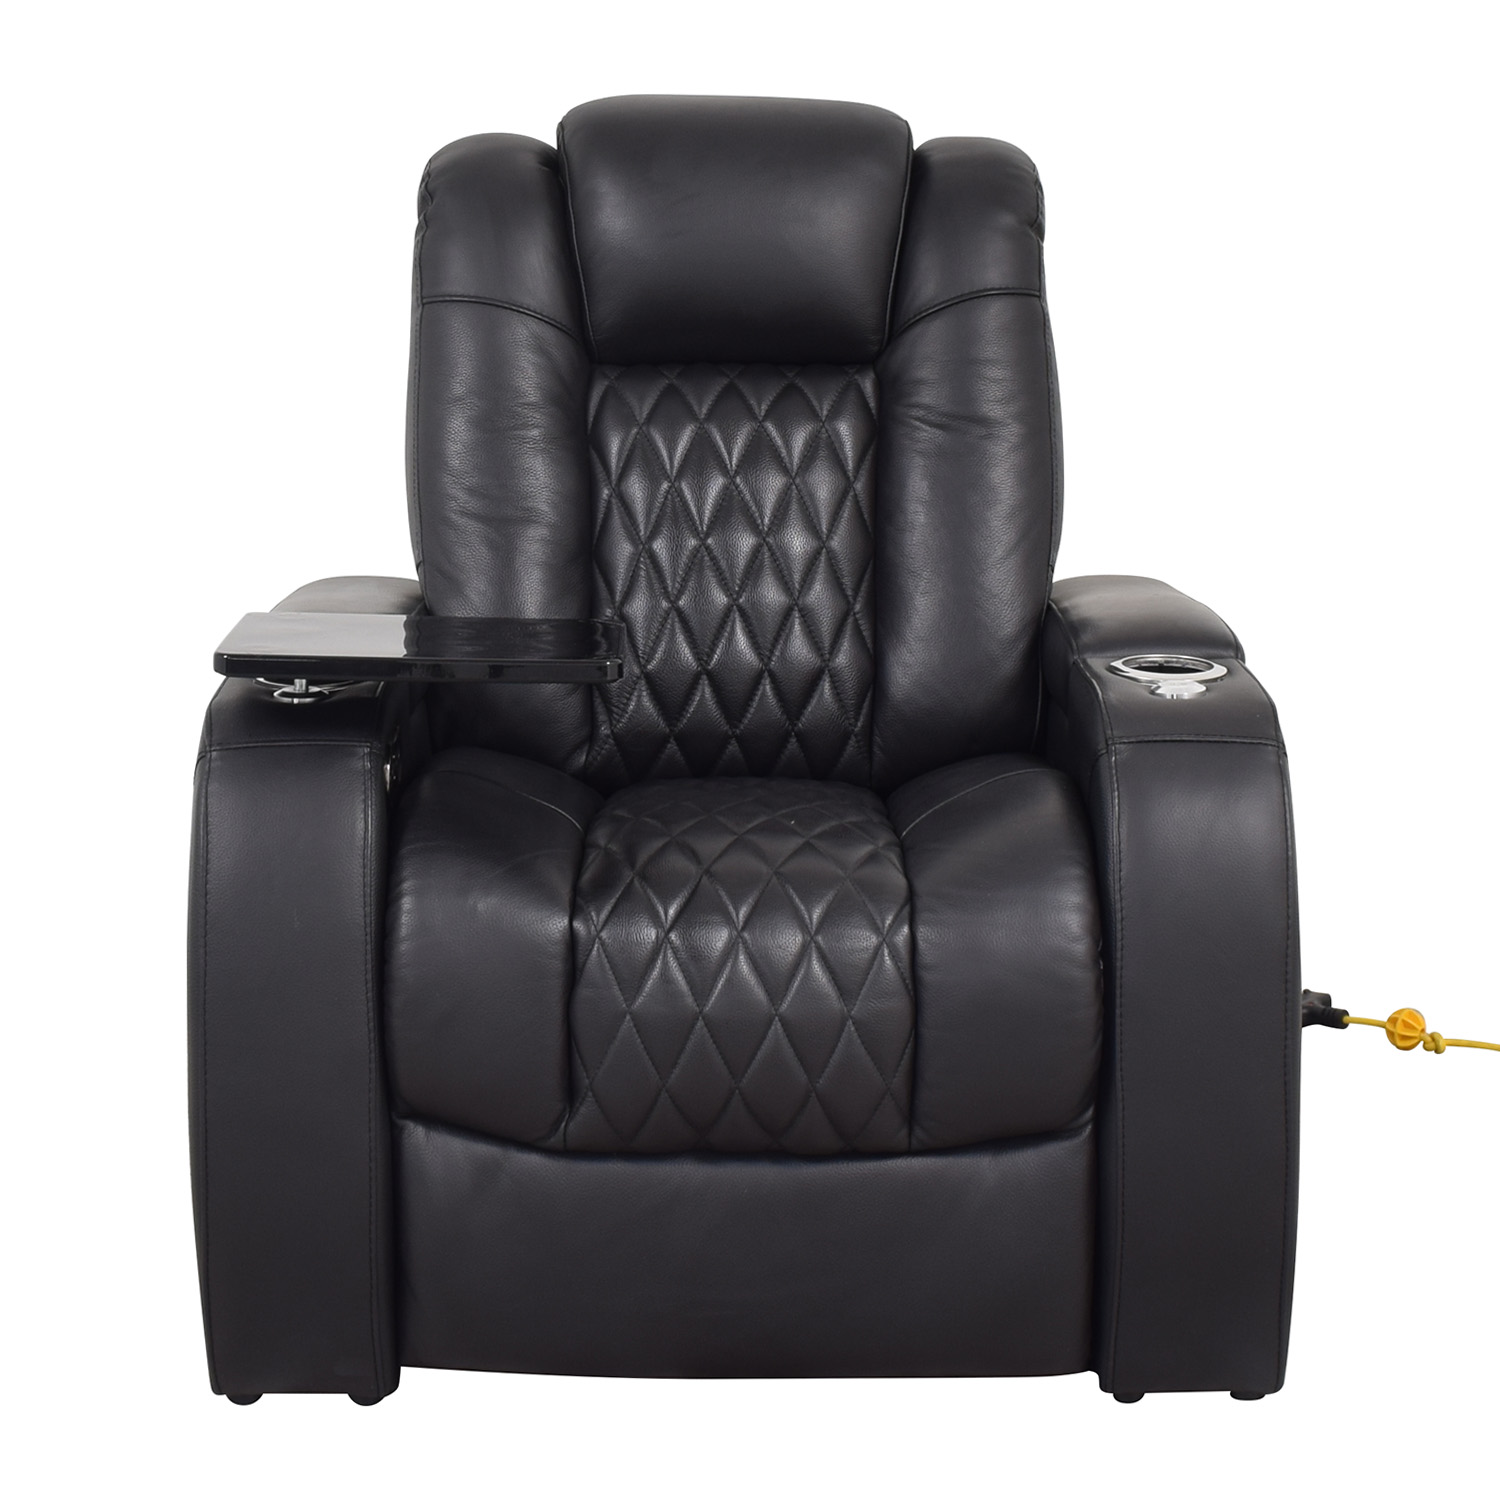 Seatcraft Seatcraft Diamante Home Theater Seating Leather Power Recliner coupon